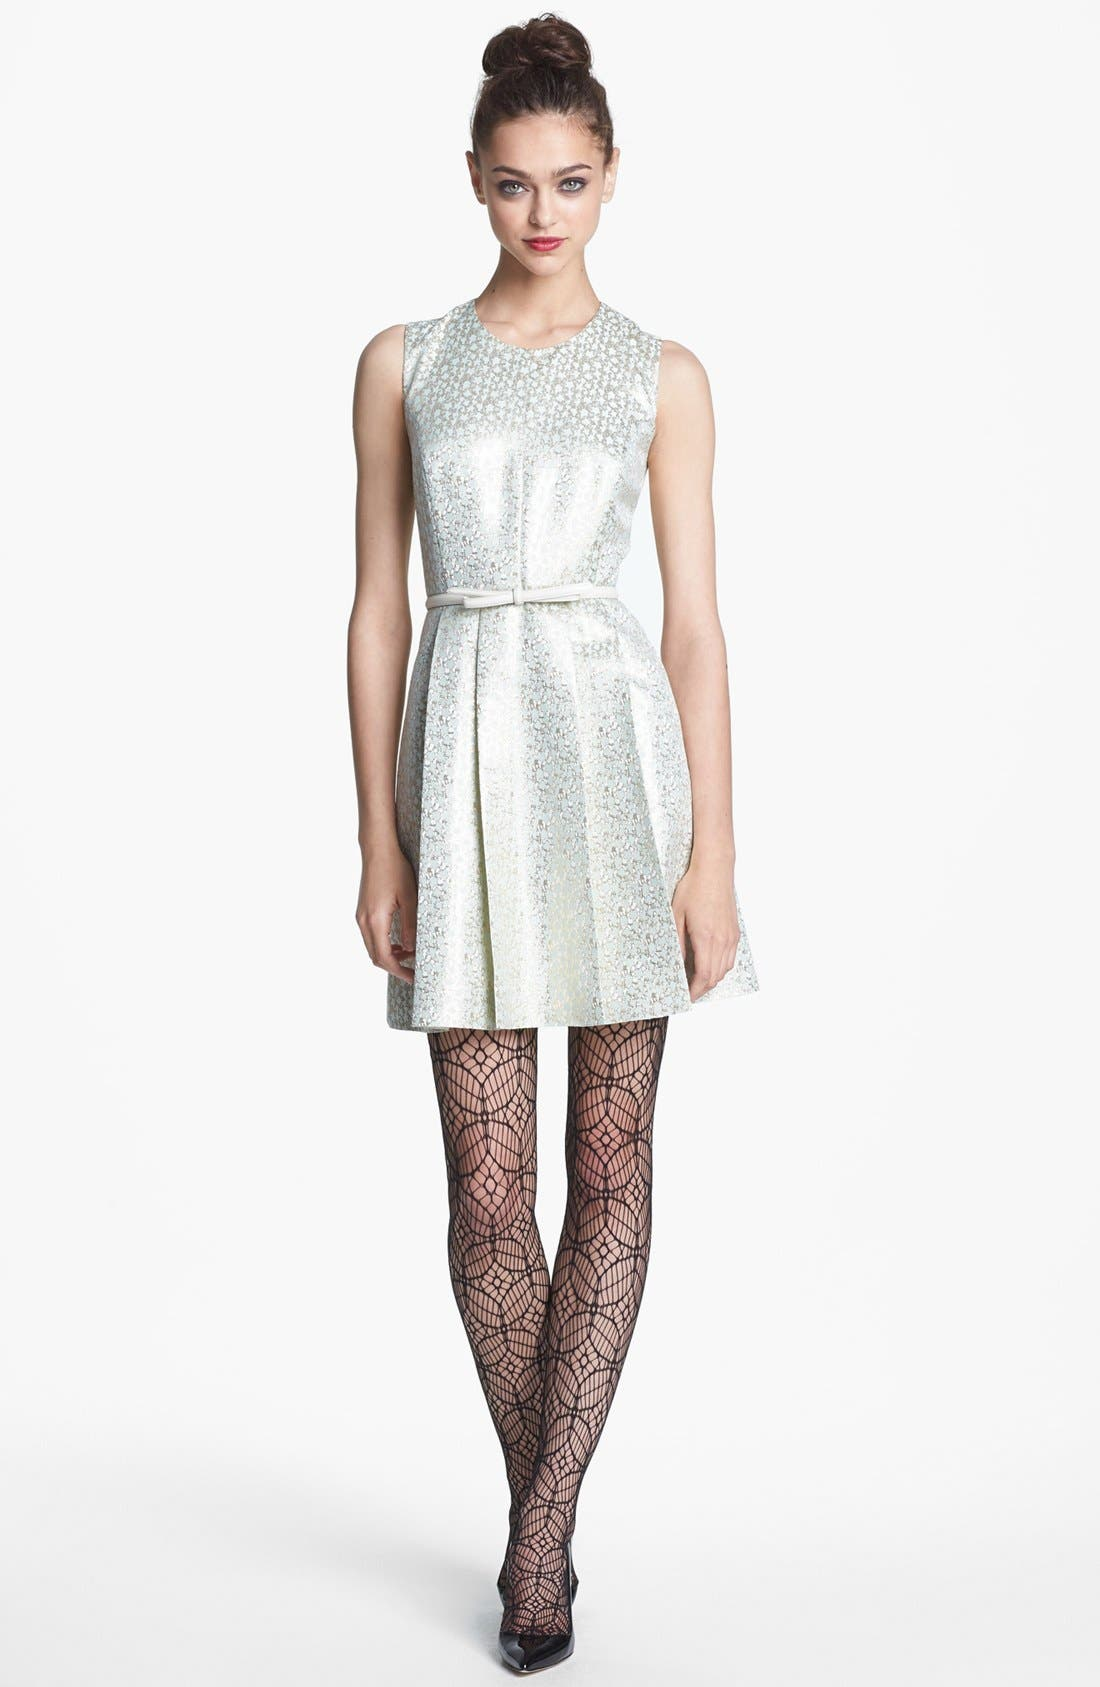 Alternate Image 1 Selected - Miss Wu Marled Jacquard Cocktail Dress (Nordstrom Exclusive)